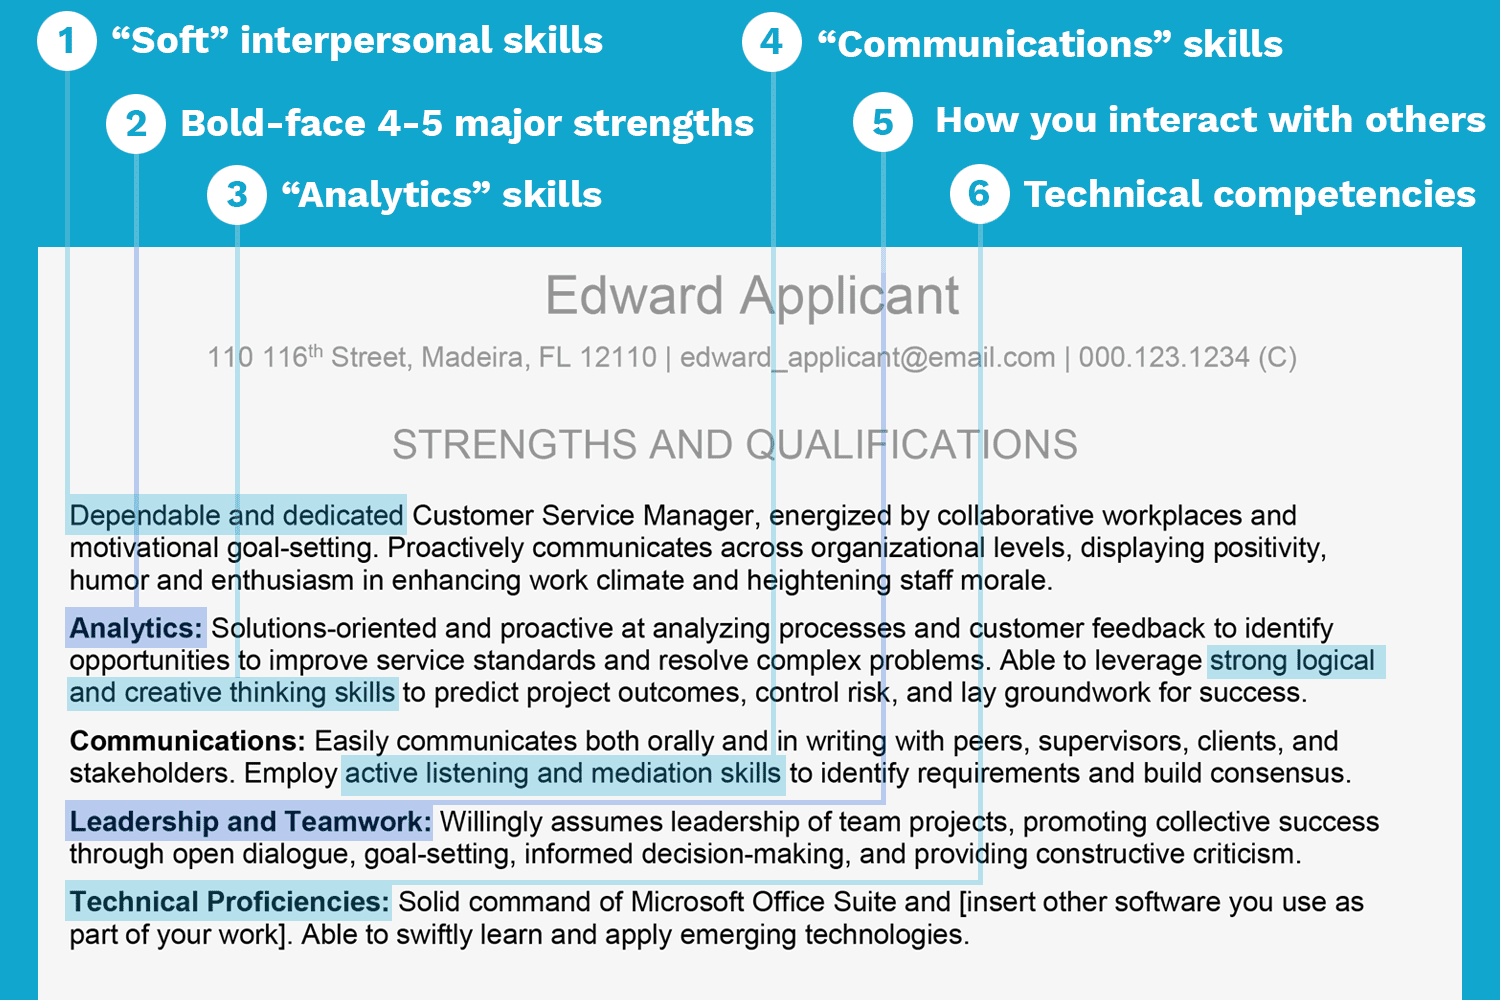 screenshot of a resume with strengths and qualifications